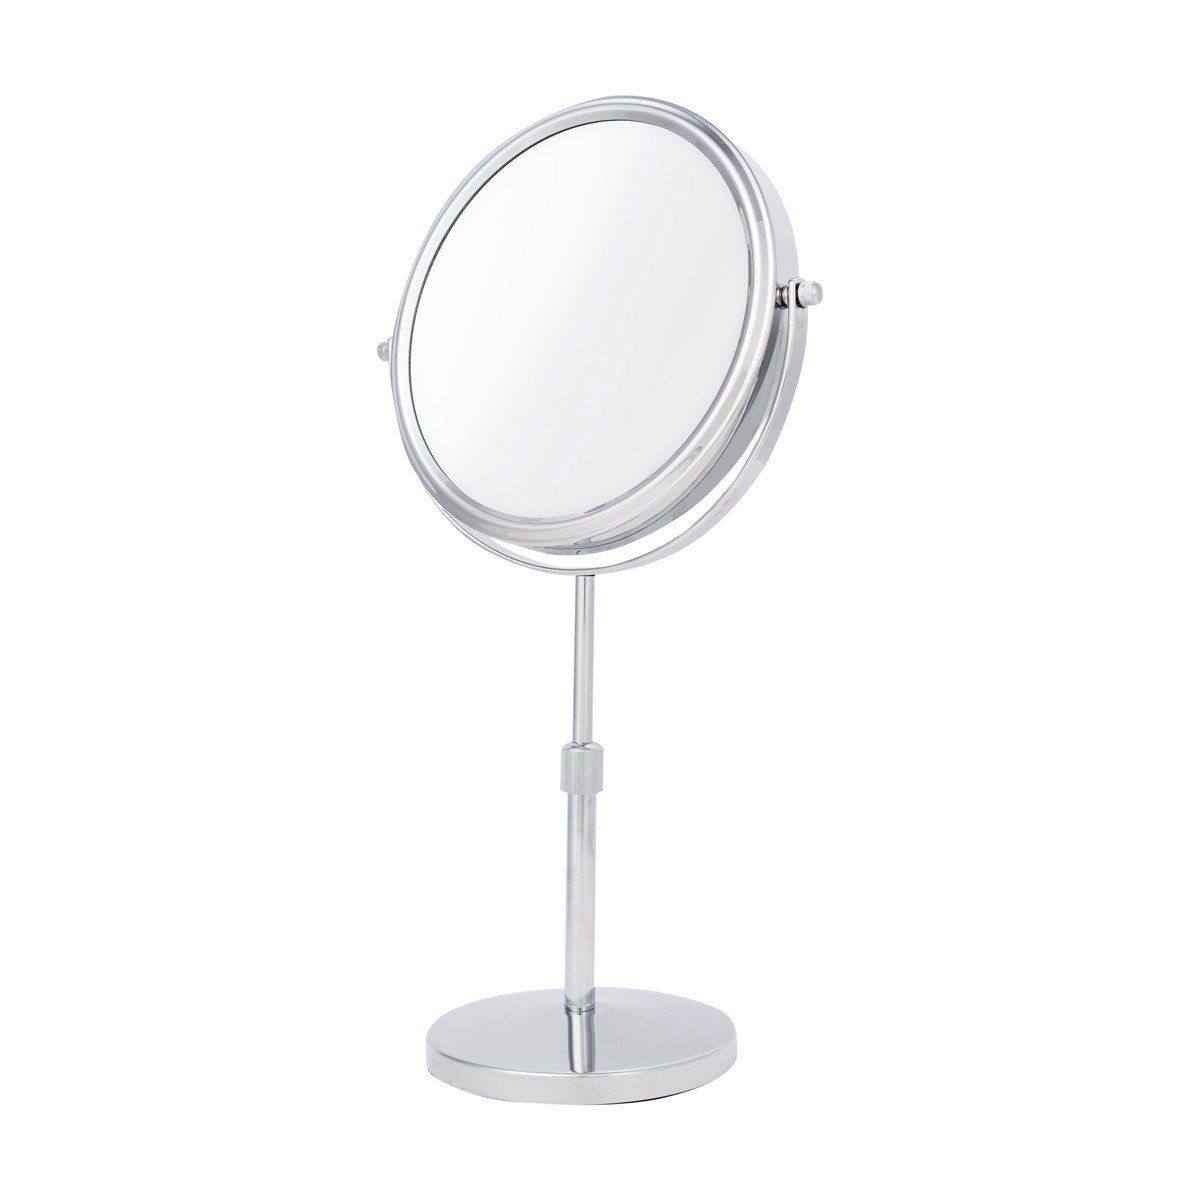 Danielle Twosided 10x Magnification Vanity Mirror With Extendable Stem Chrome Visit The Image Link More Details This Is Mirror Makeup Mirror Vanity Mirror